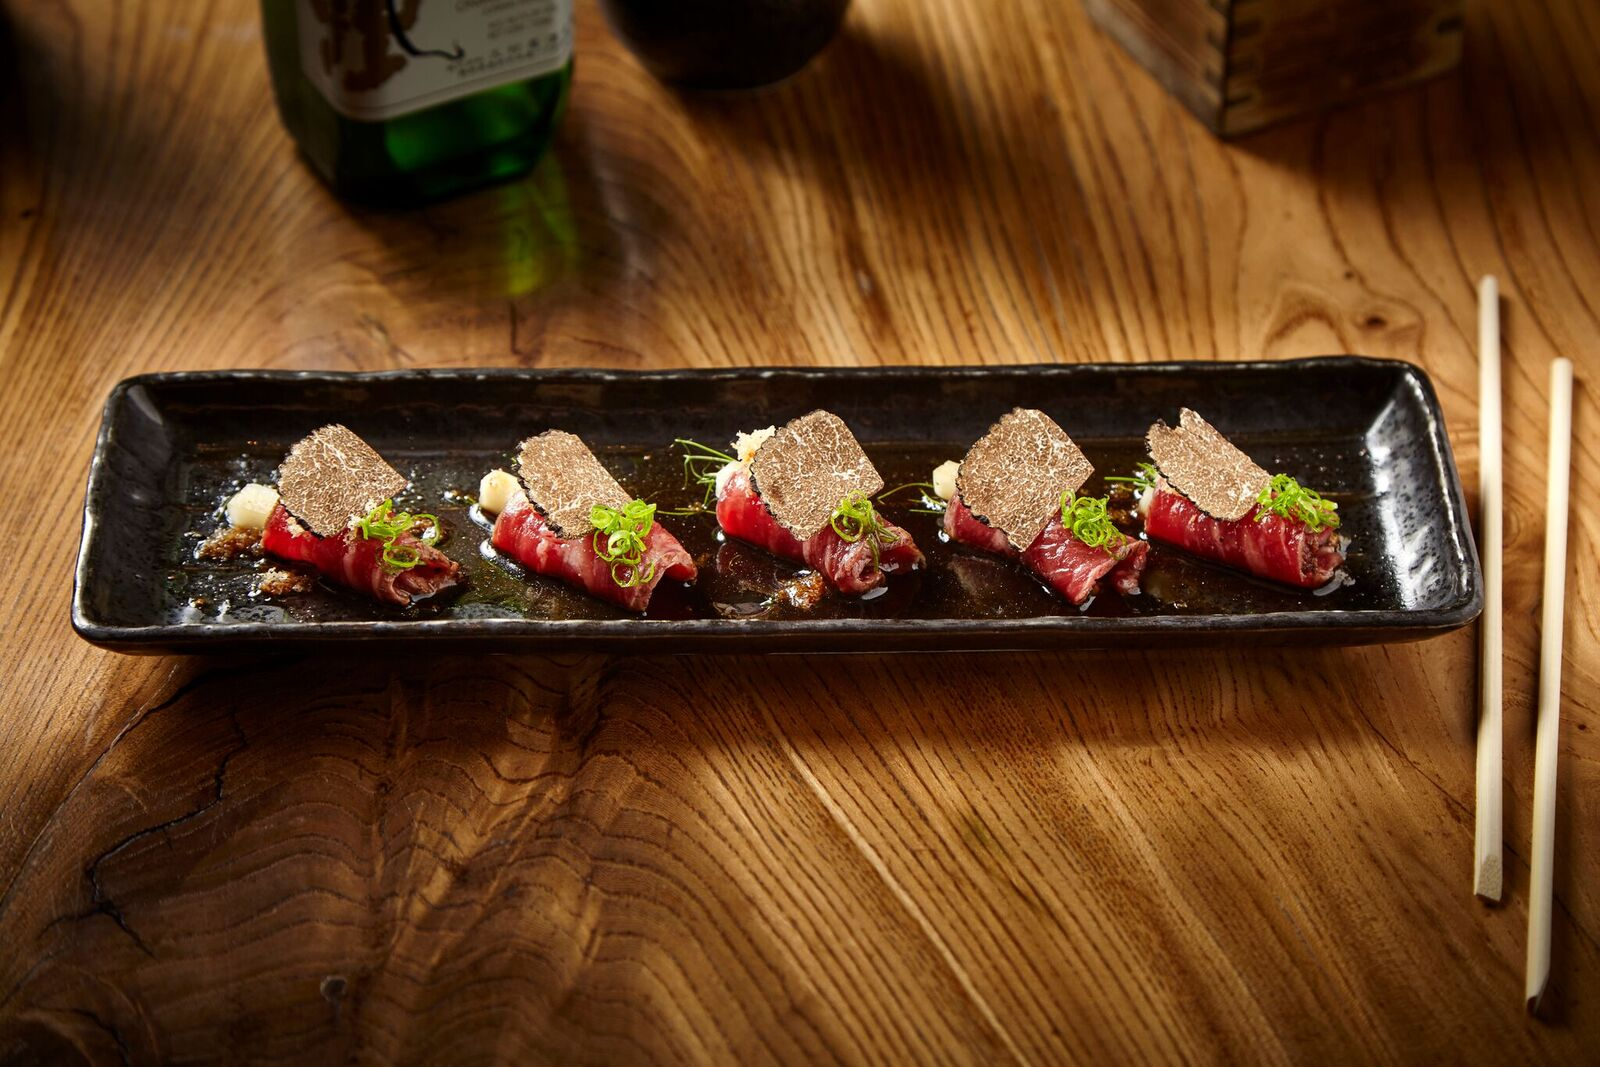 Picture of Prime Beef Tataki on a plate.